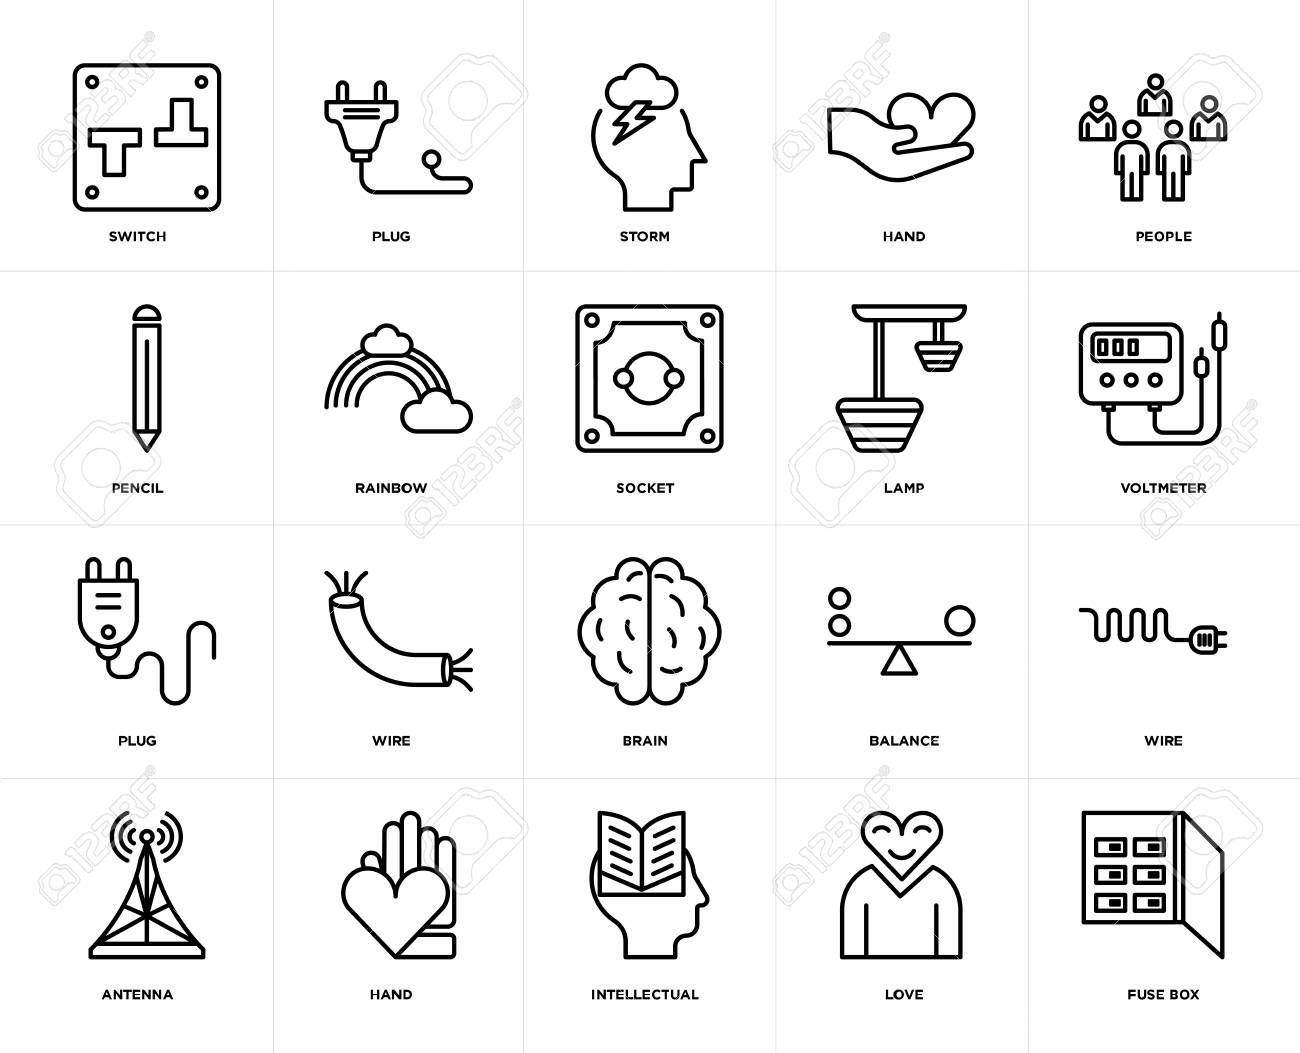 set of 20 icons such as fuse box, love, intellectual, hand, antenna